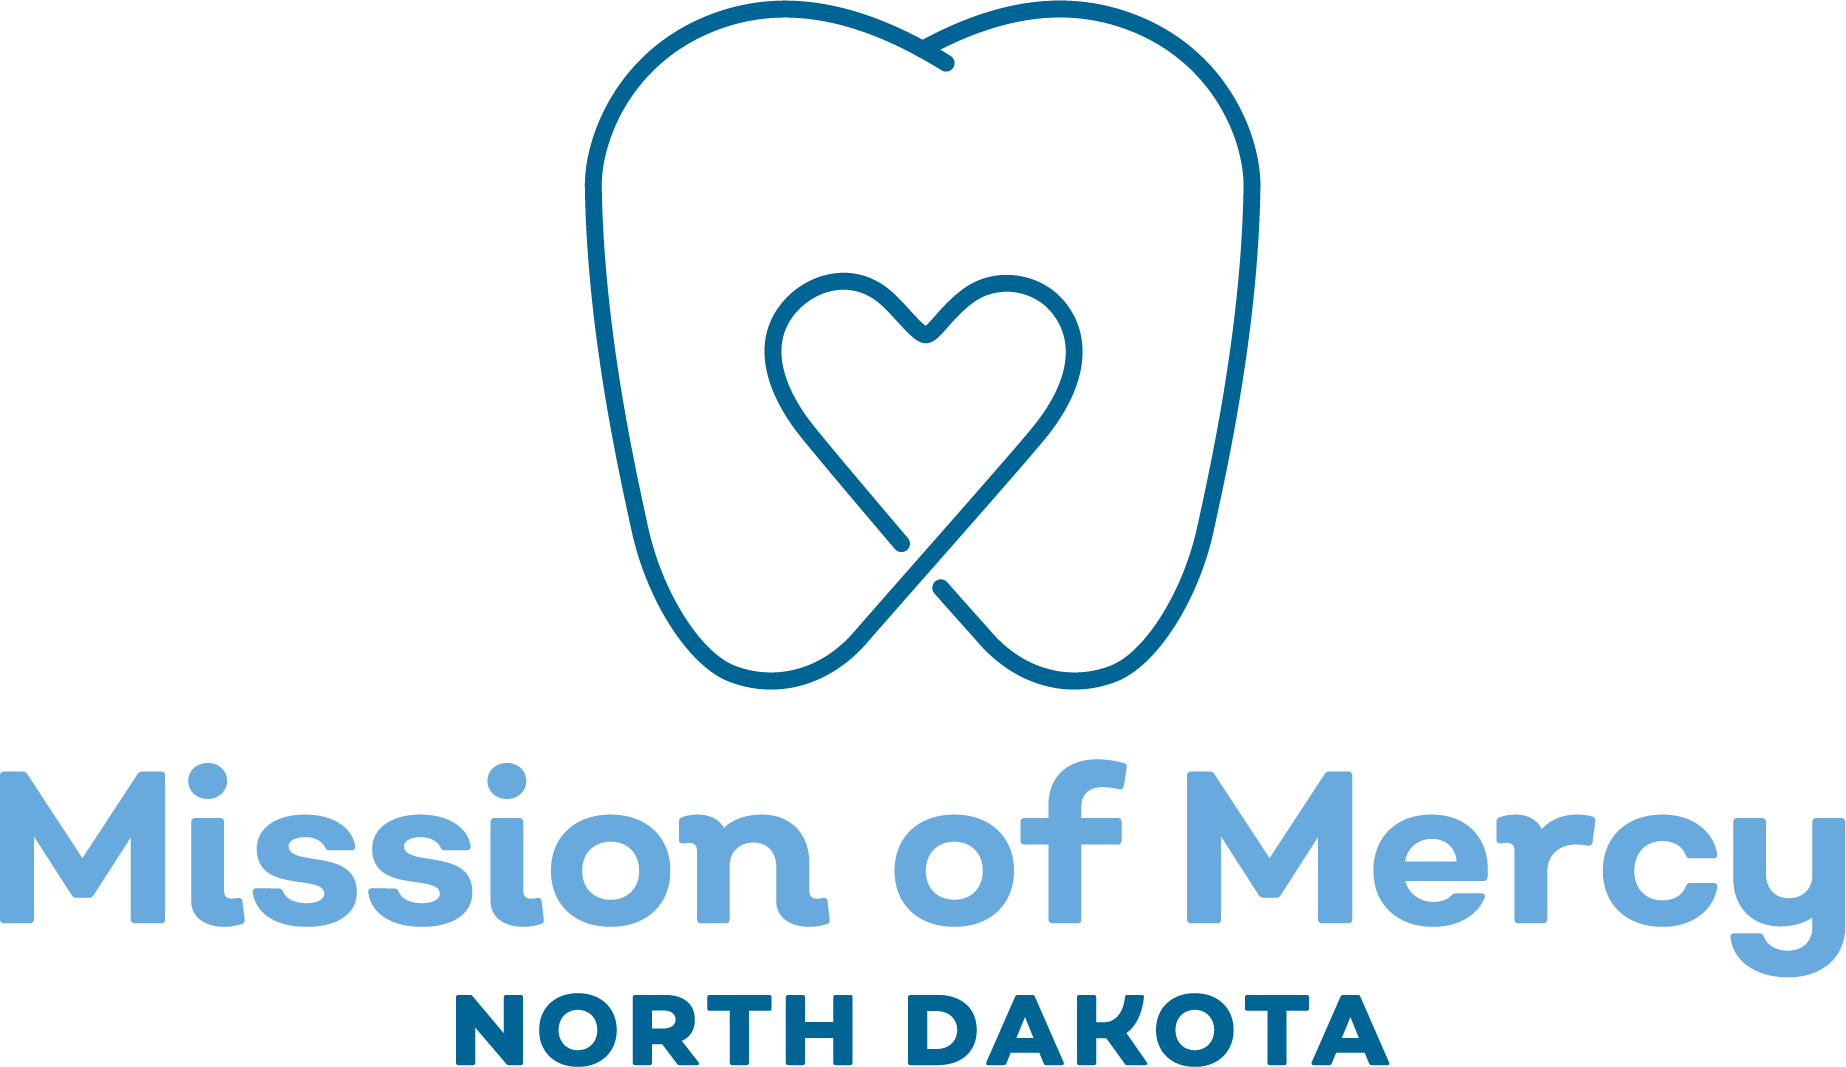 Mission_of_Mercy_ND